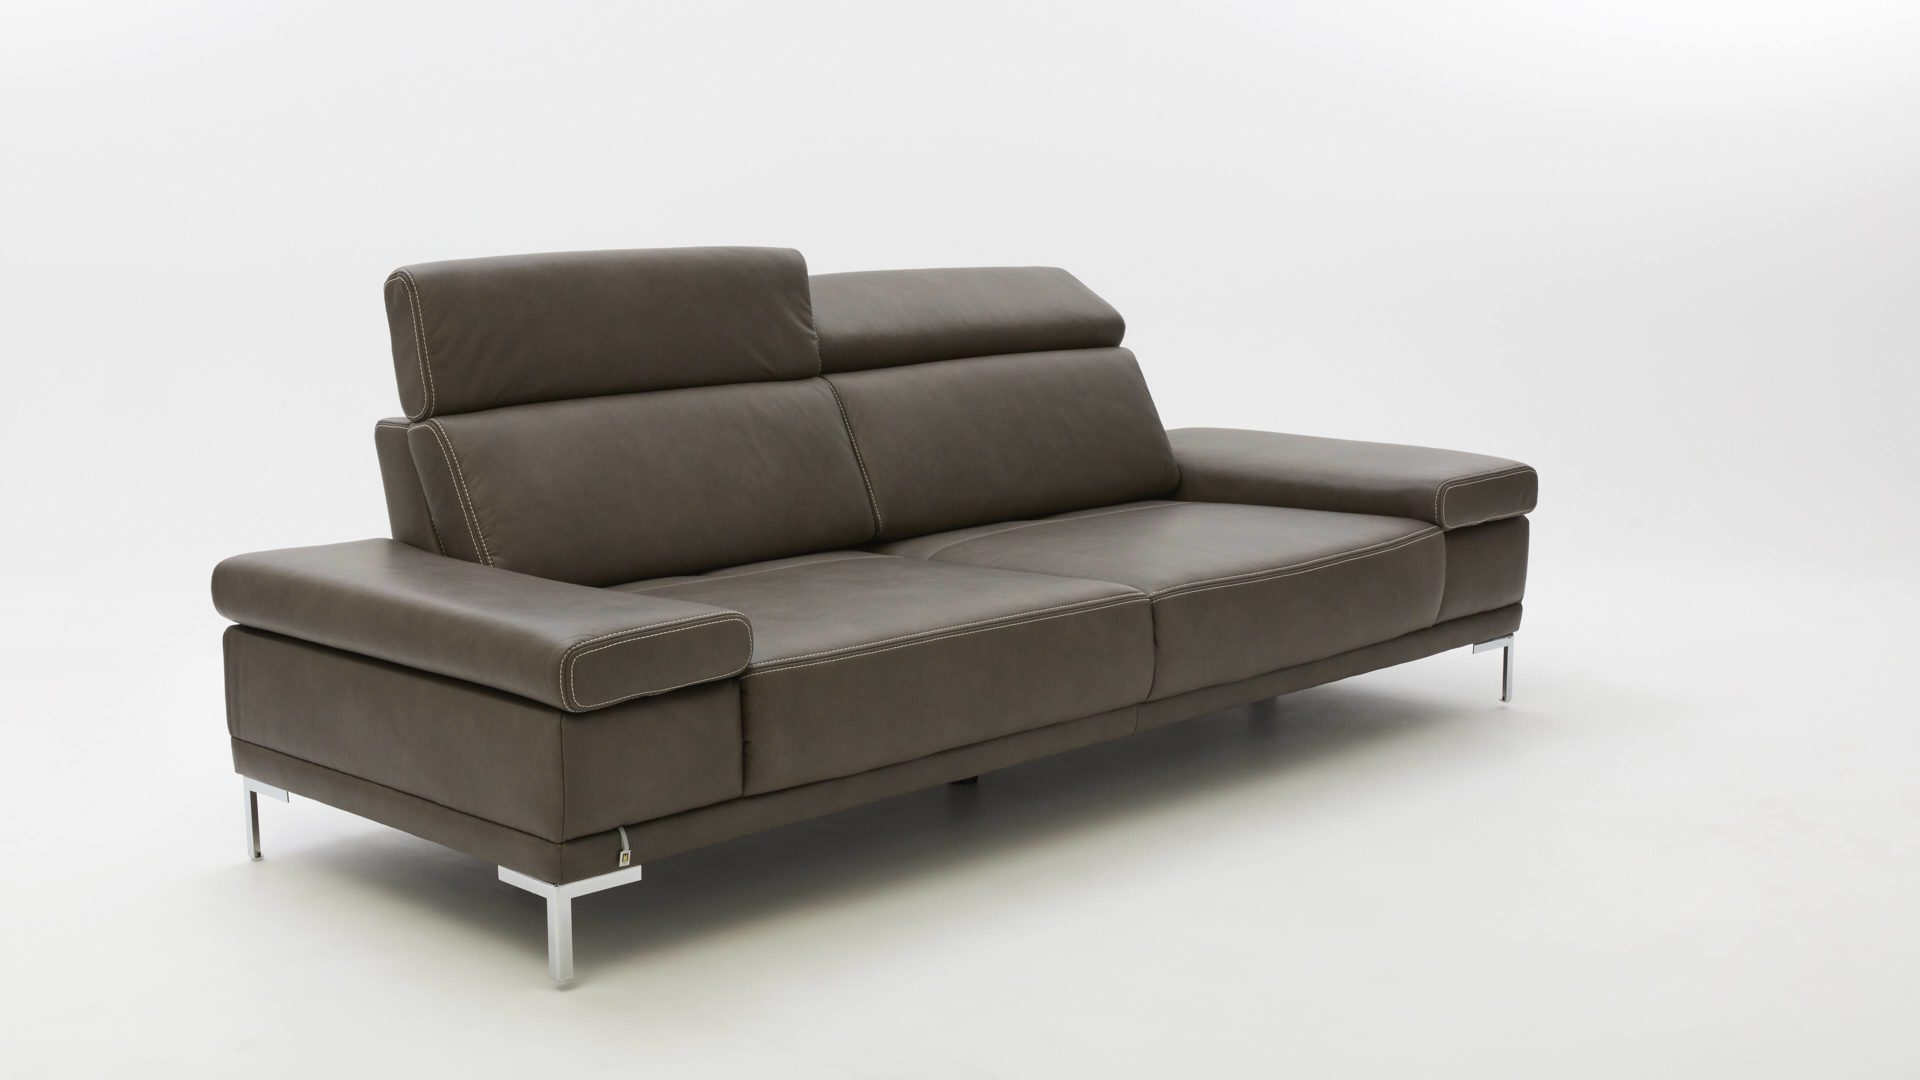 Couches Sofas Interliving Funktions Polsterecke Kawoo